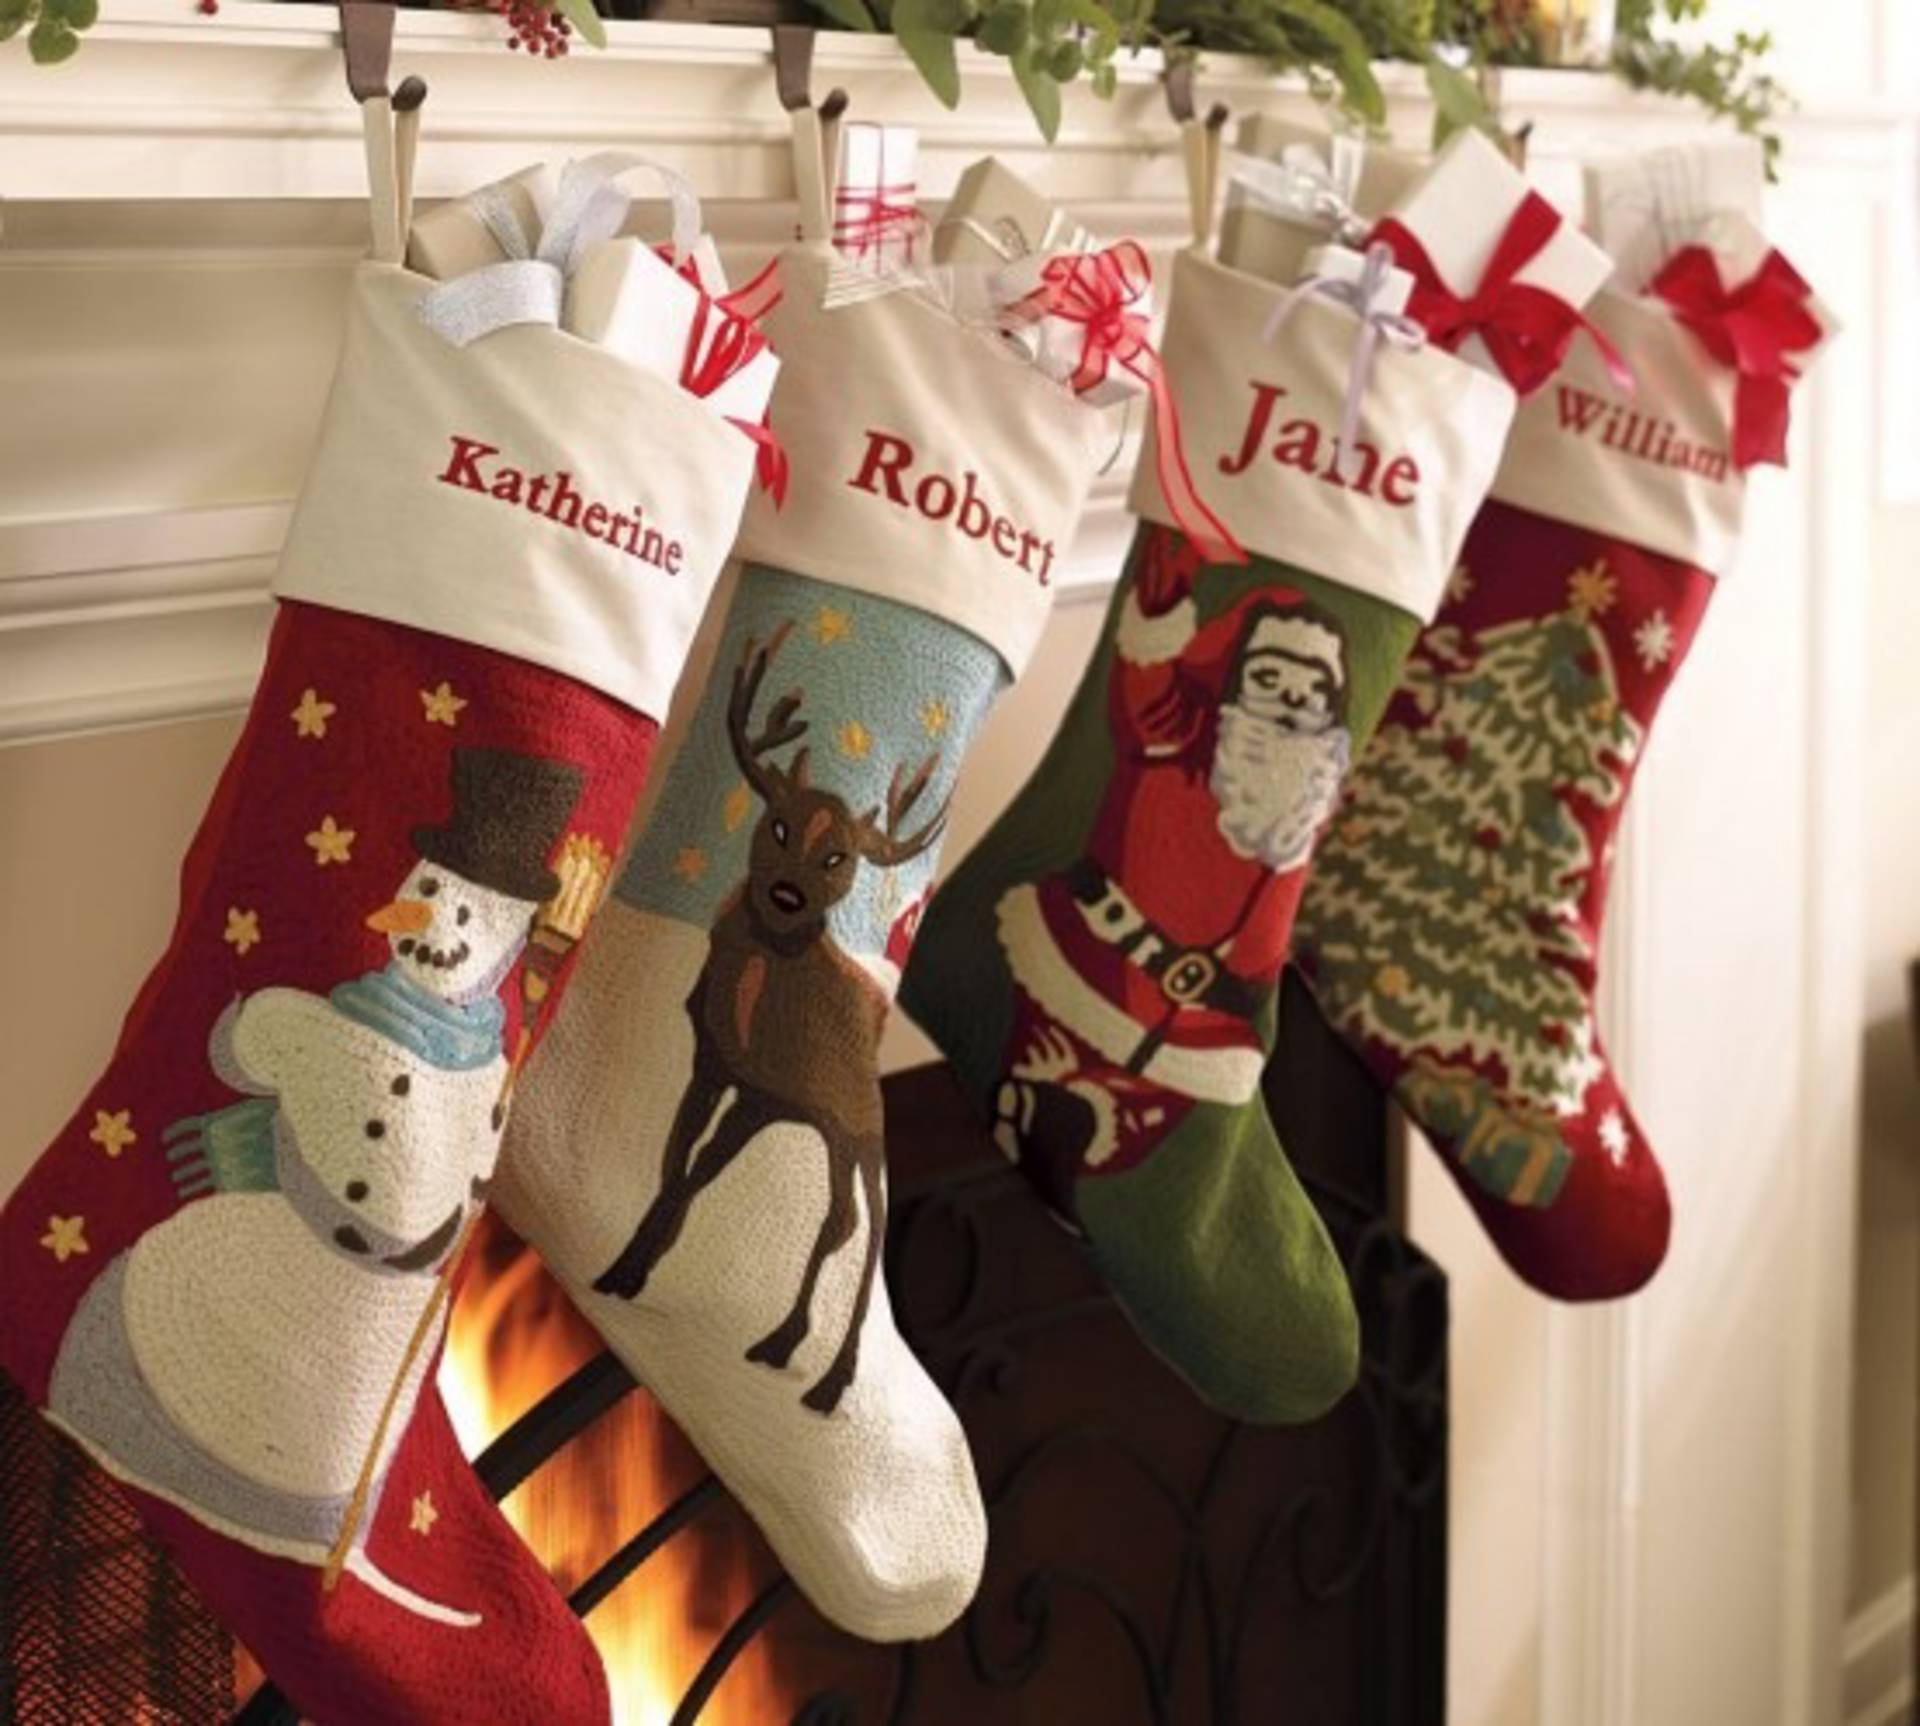 monogrammed pottery stockings personalised pretty bean embroidered appealing faux fur quilted barns decoration decorating barn stocking for christmas stocki ll ideas